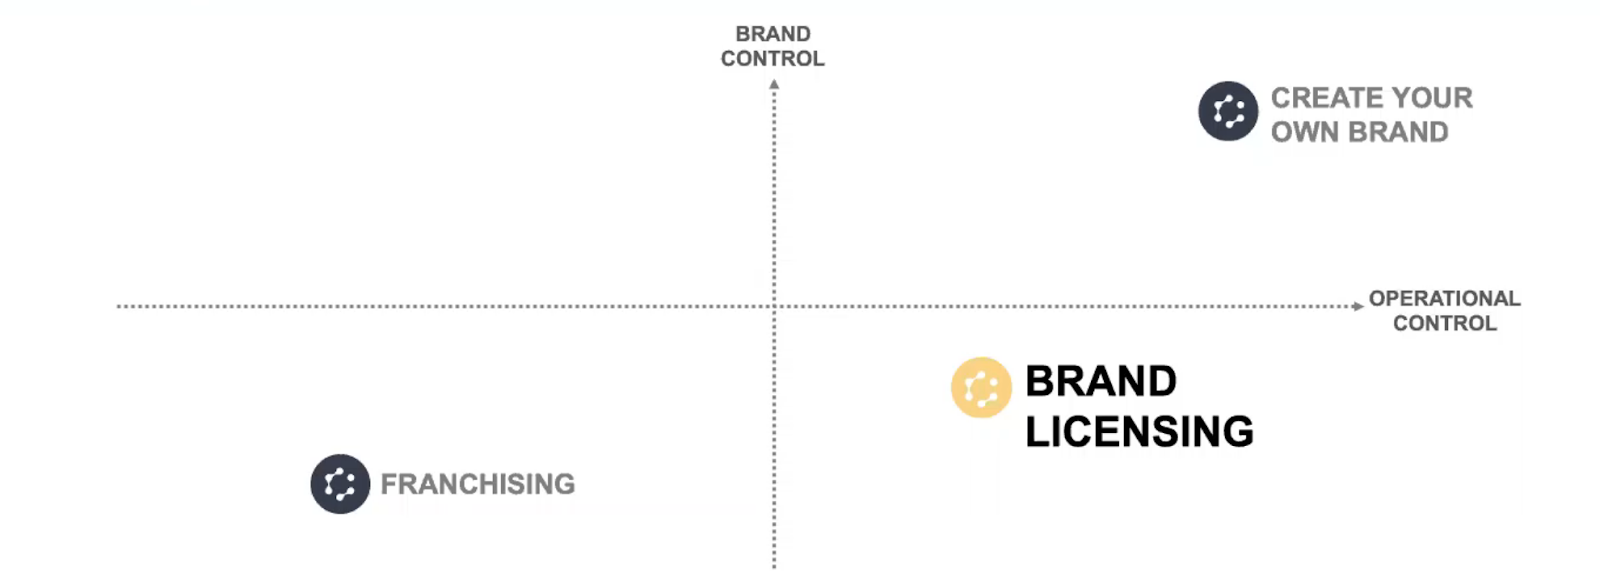 Brand franchising vs licensing